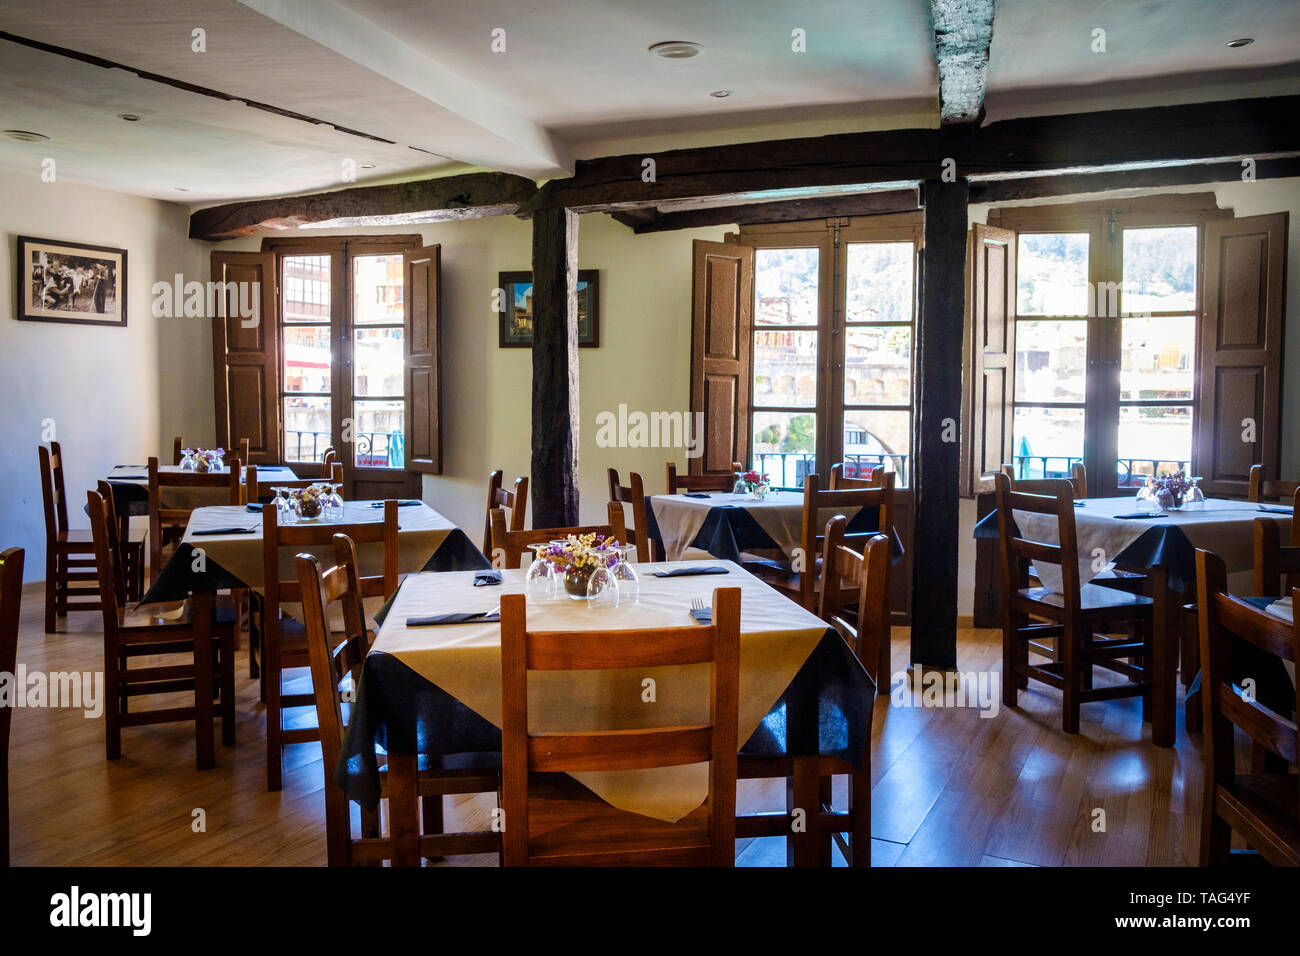 Interior Of A Classic Restaurant In Spain Europe Stock Photo Alamy